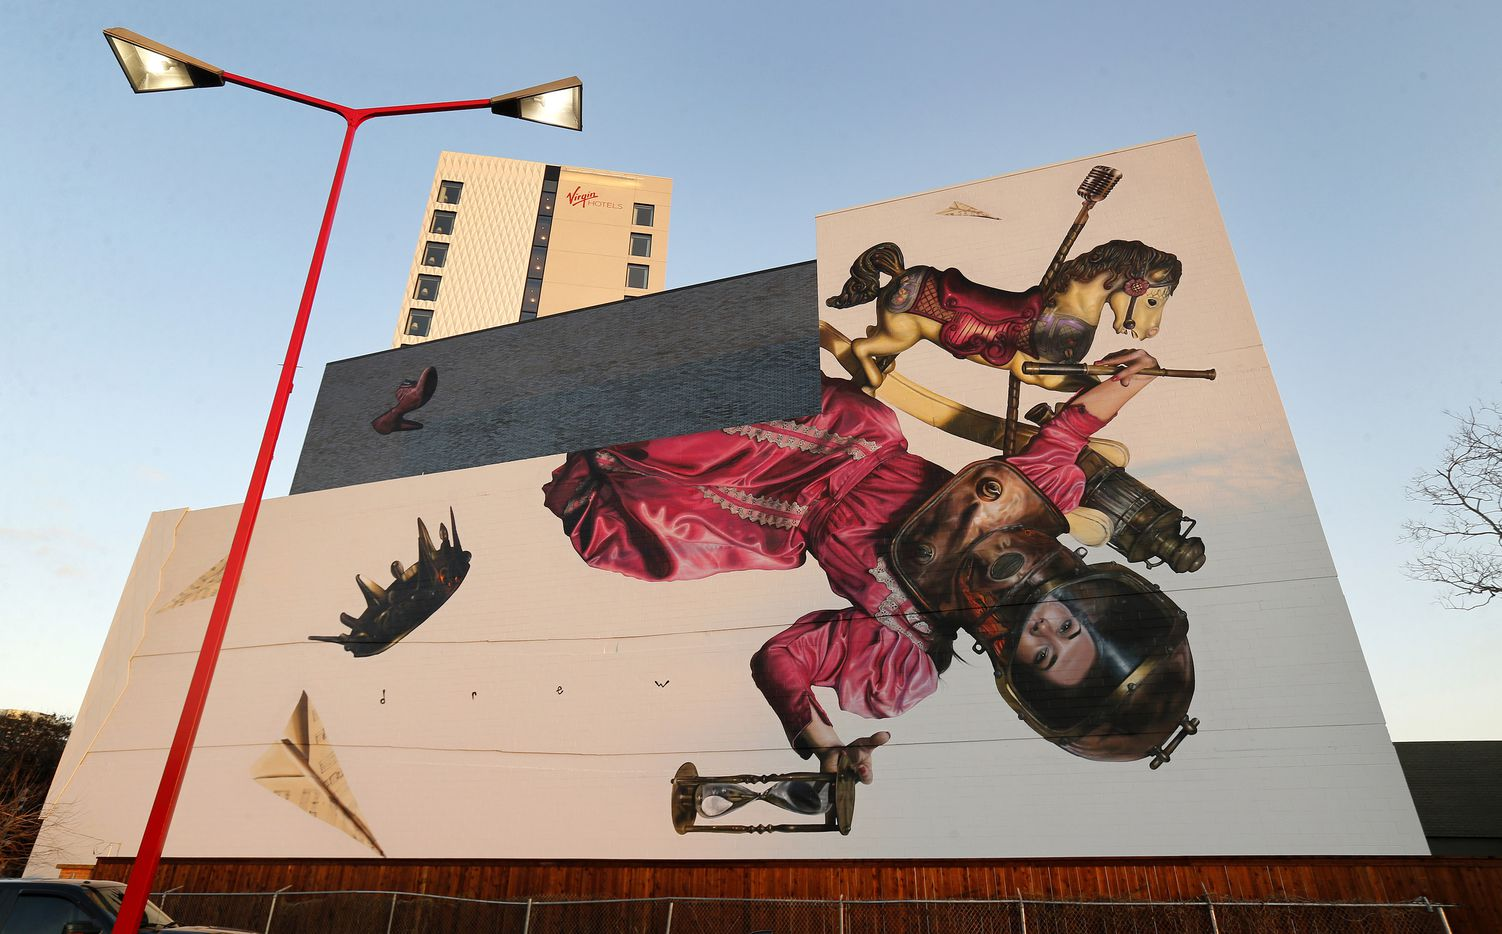 """Artist Drew Merritt painted """"Amor Vincit Omnia"""" (Latin for """"Love conquers all"""") mural on the backside of the Virgin Hotel in the Design District area of Dallas. Photographed, Thursday, February 20, 2020."""